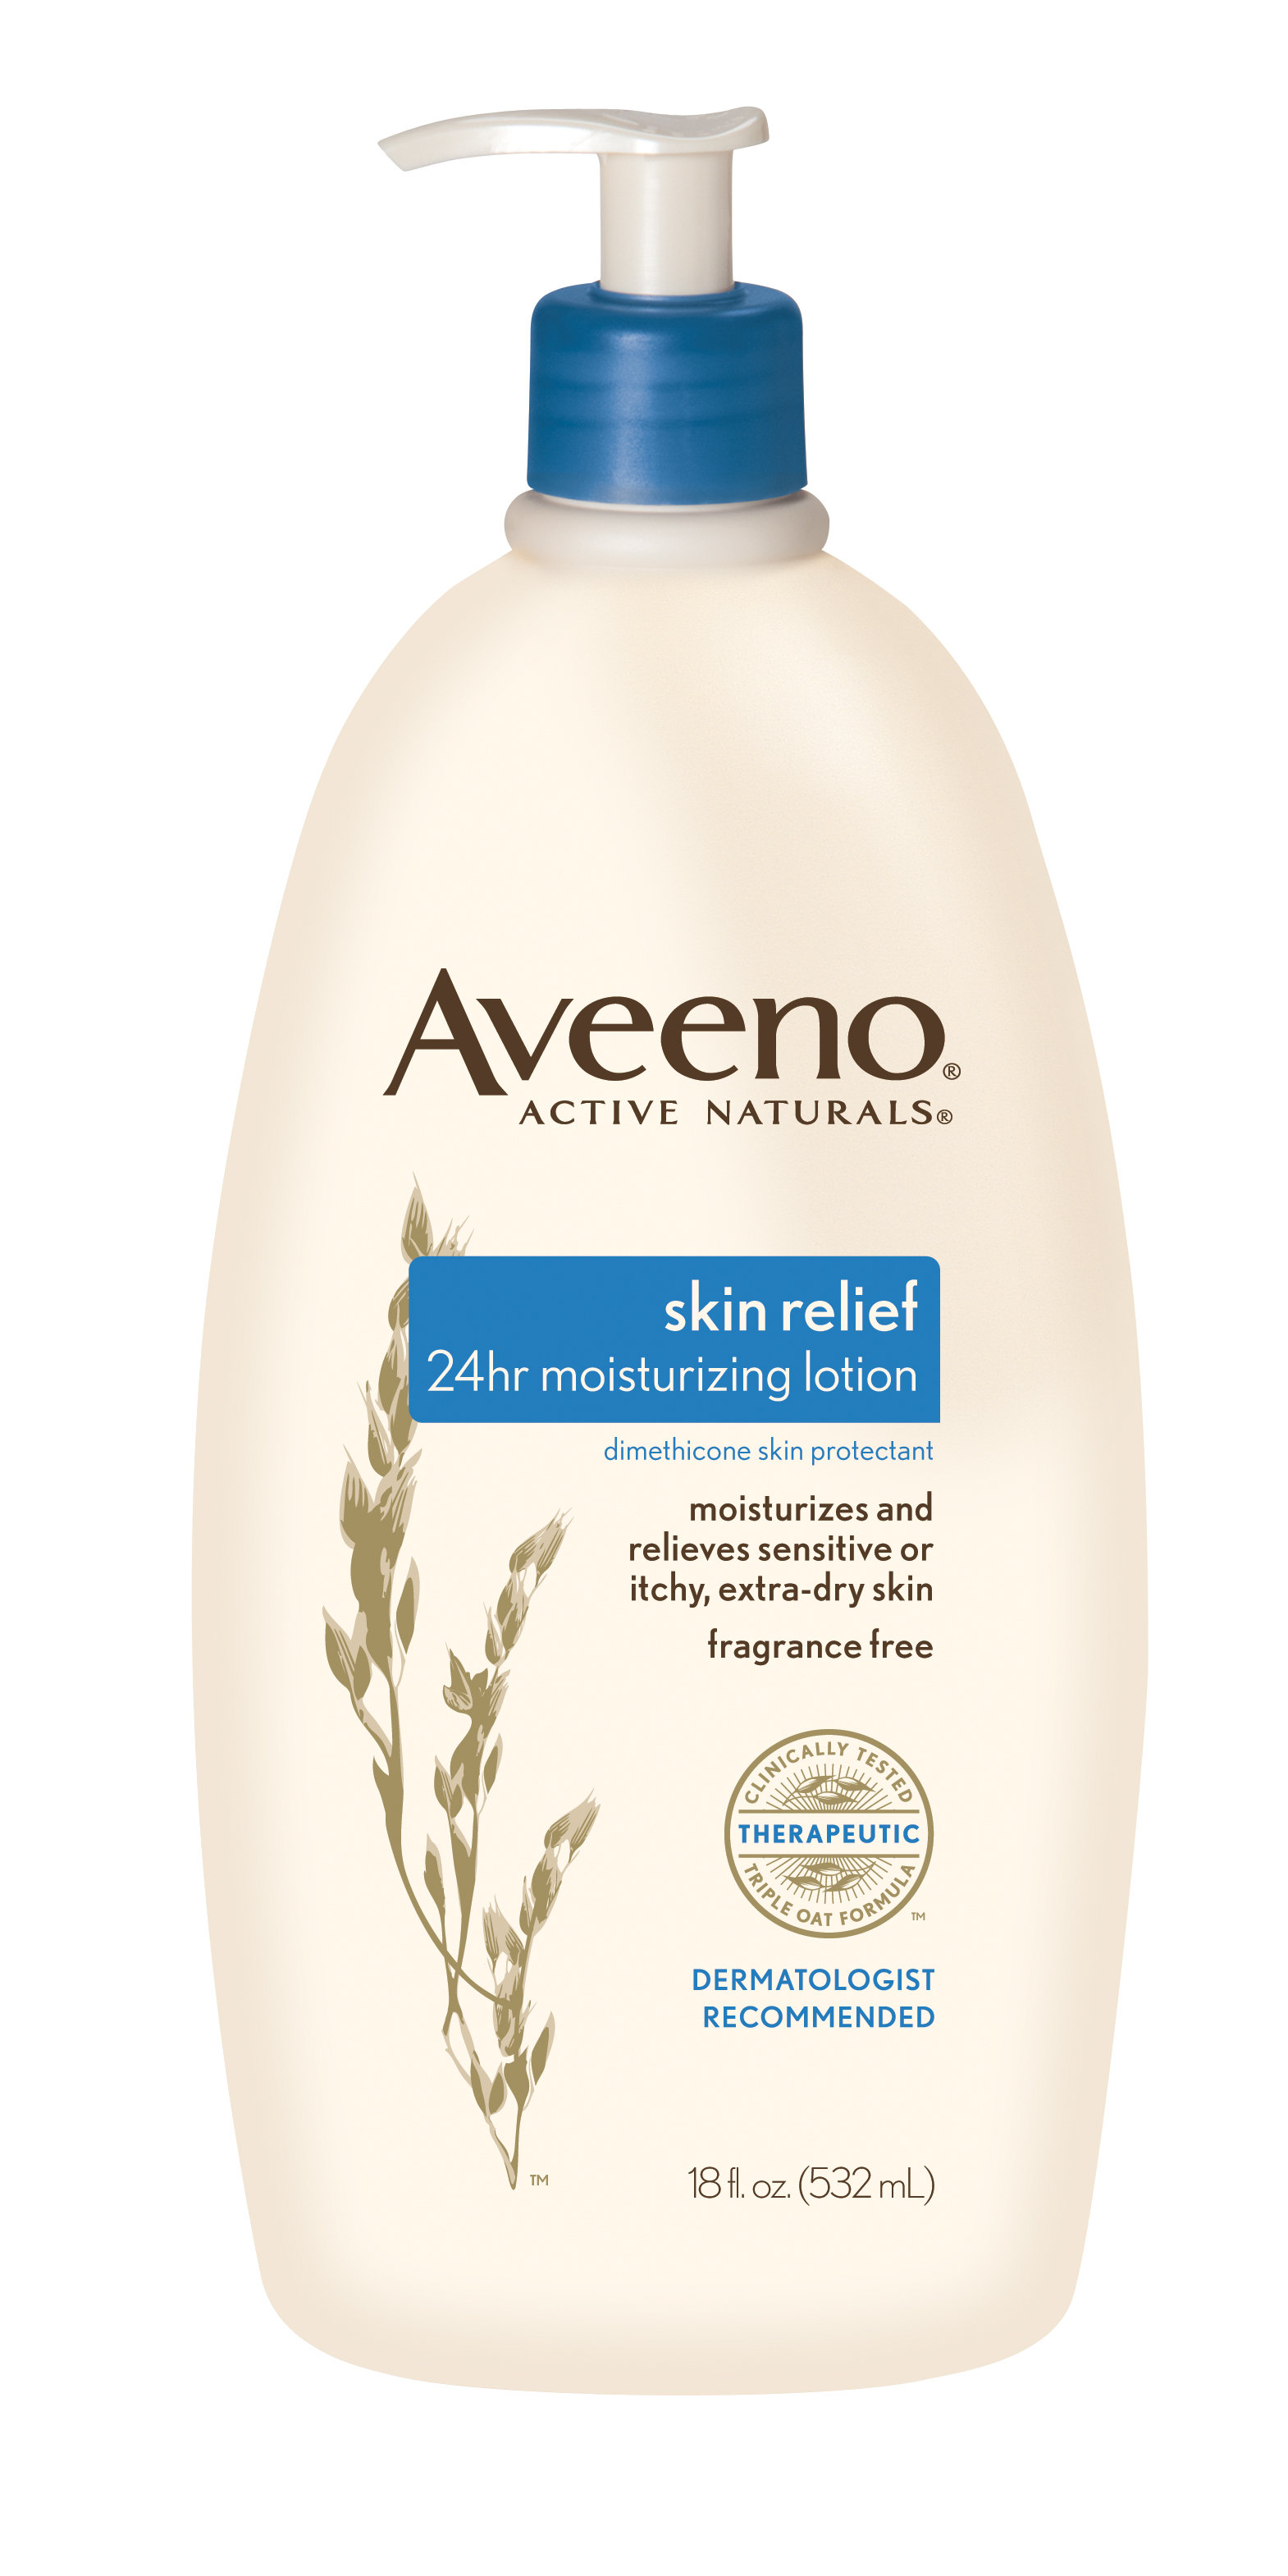 c26 B001E96LCM 1 s Aveeno Active Naturals Skin Relief Moisturizing Lotion with Soothing Oatmeal Essence, 18 Ounce Bottle